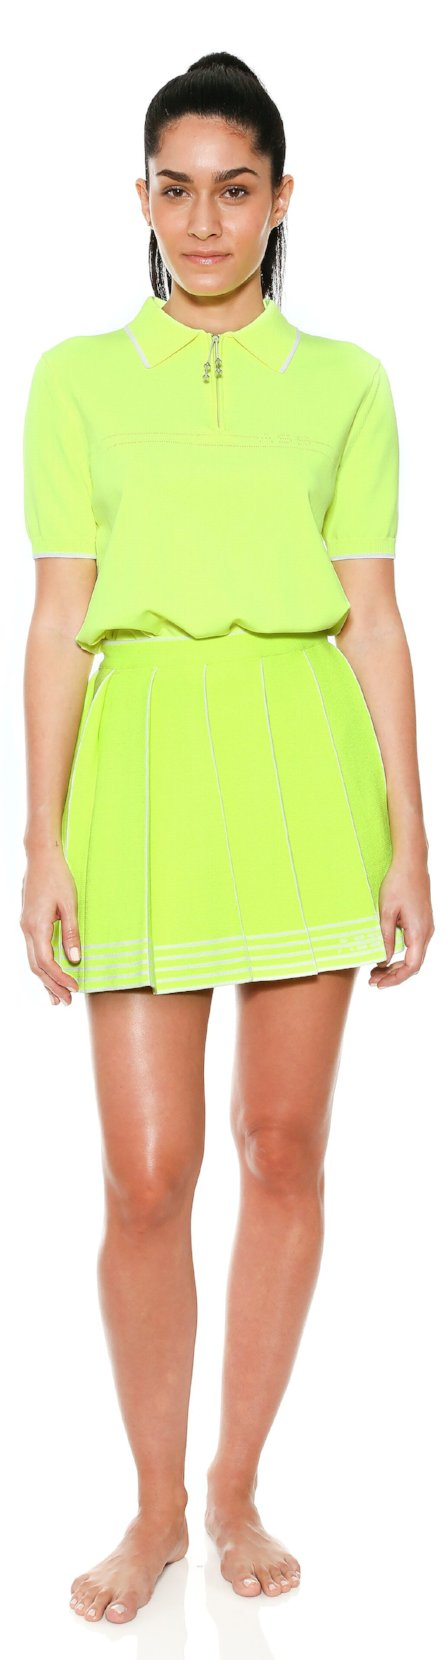 pleated bottom skirt neon adam selman workout knit clothes work out